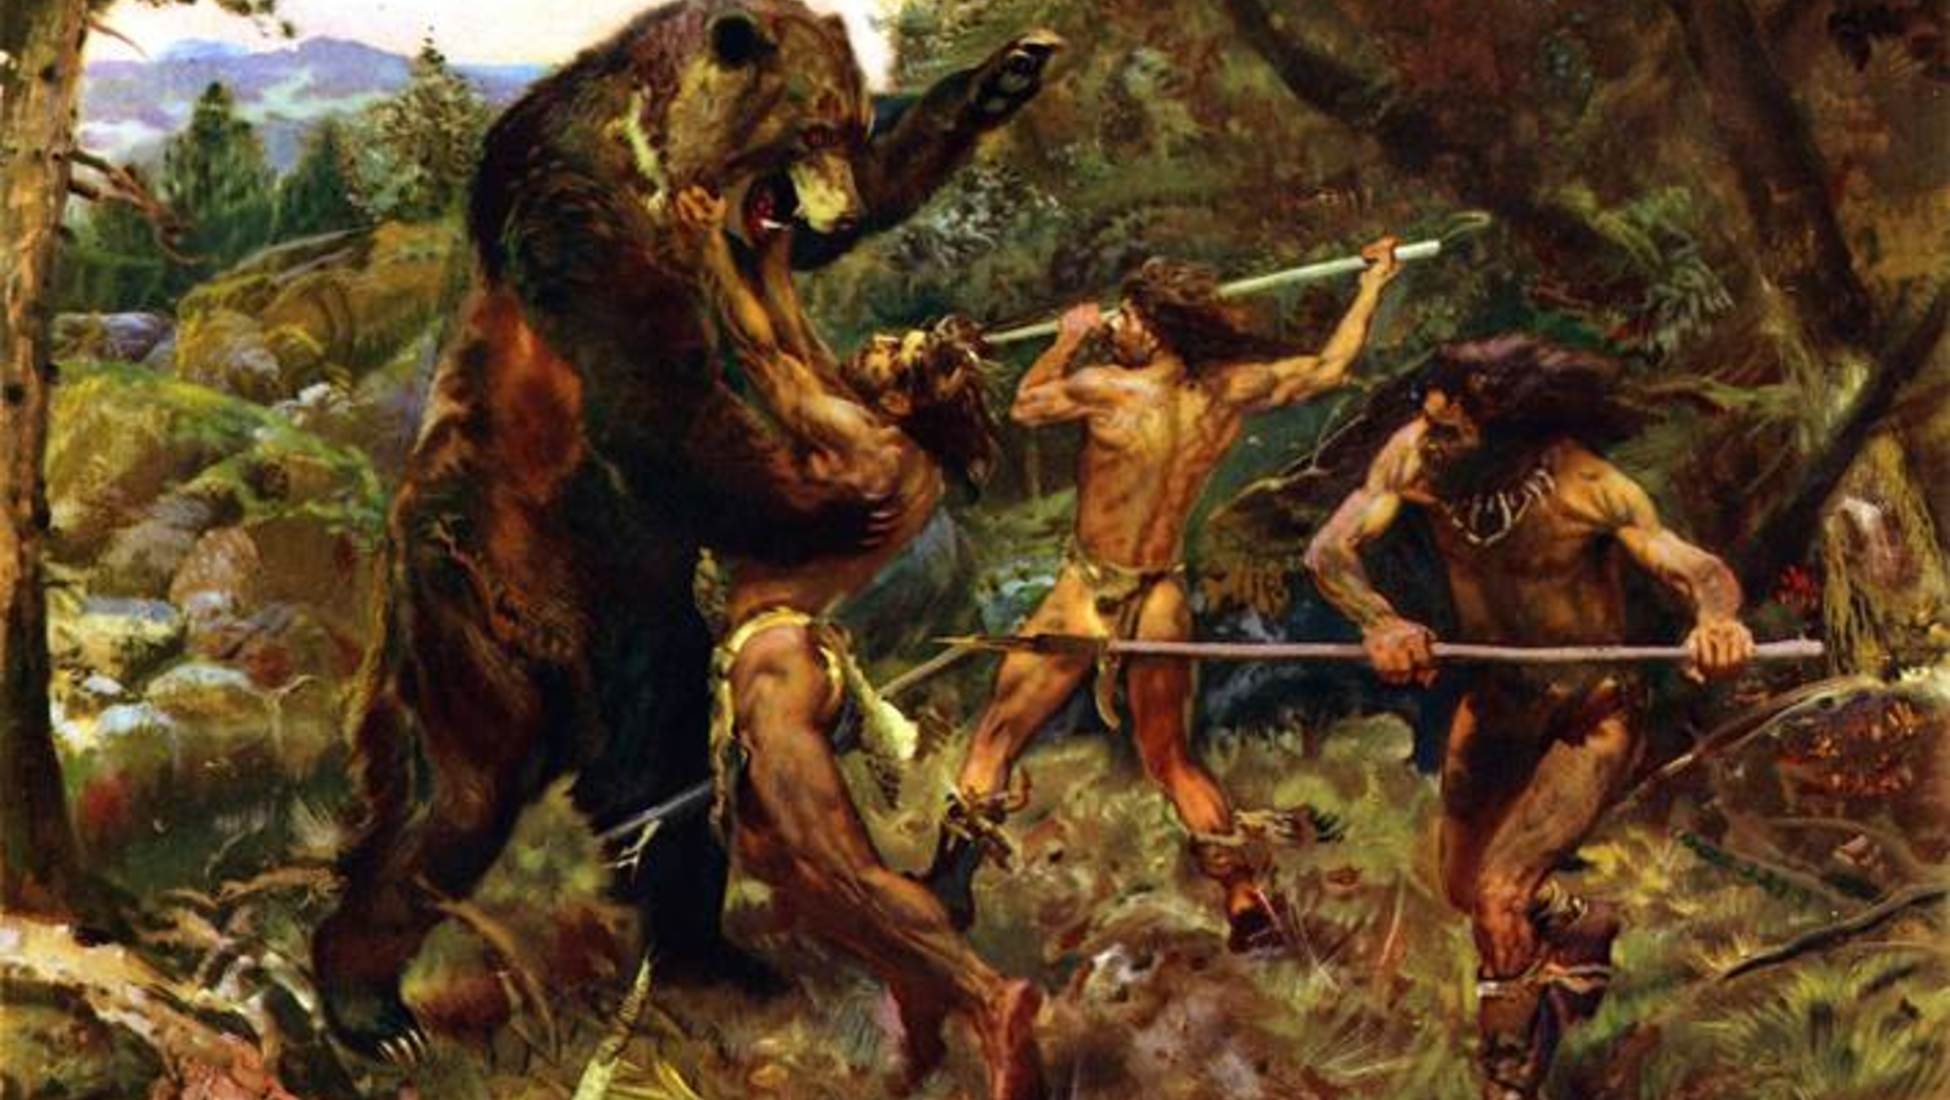 5 Things You Never Knew About Prehistoric Cave Bears Catawiki